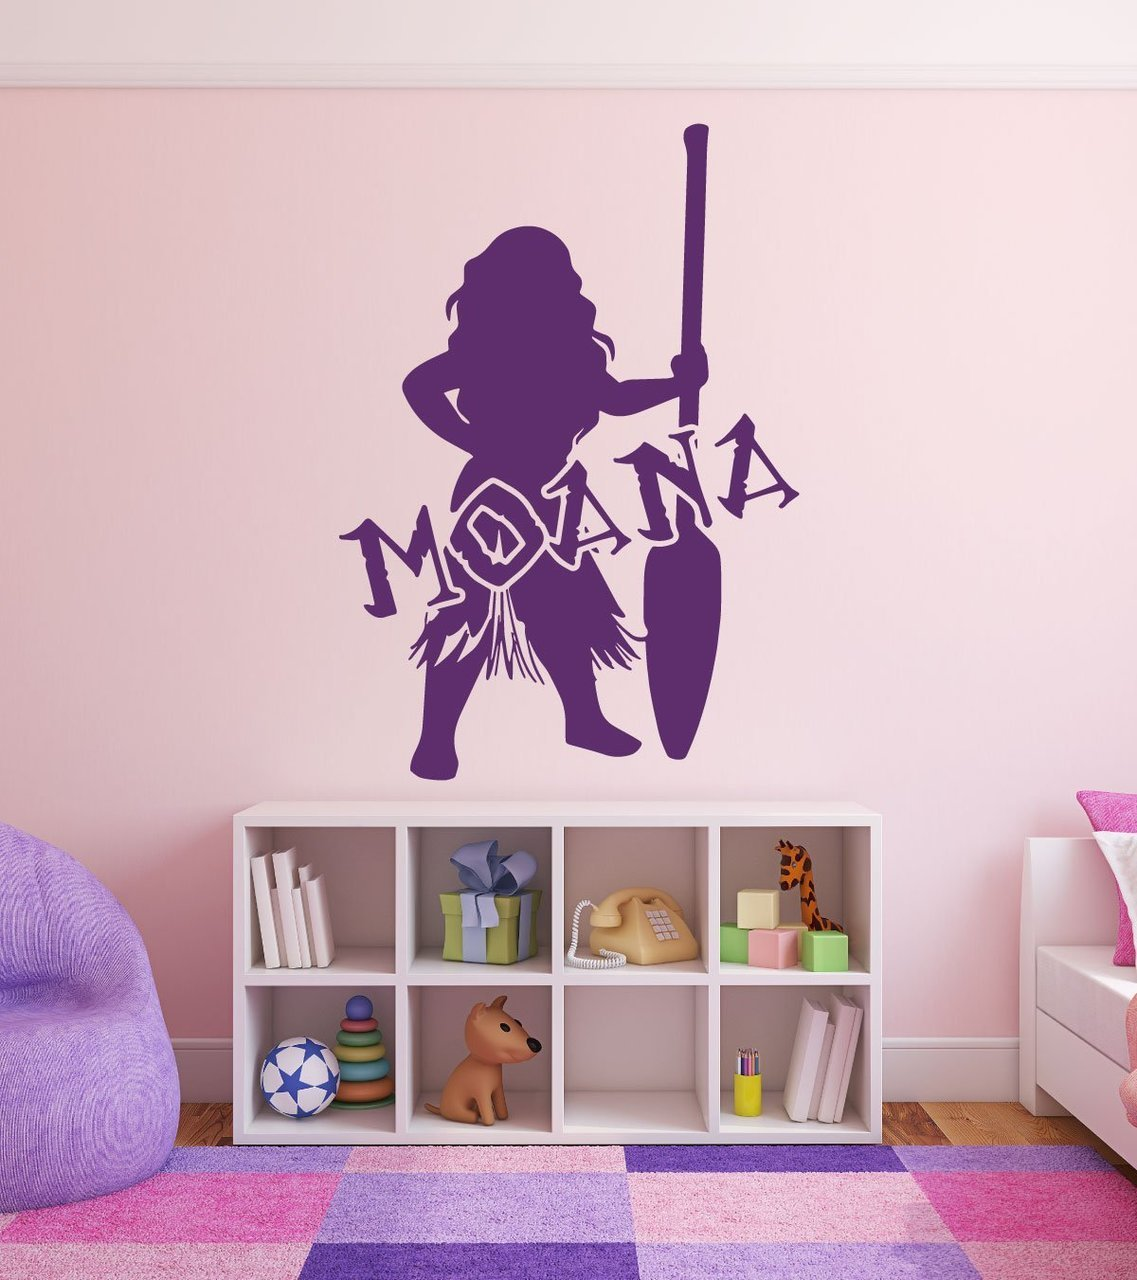 Disney Home Decor Disney Princesses Wall Decals Moana Disney Home Decor